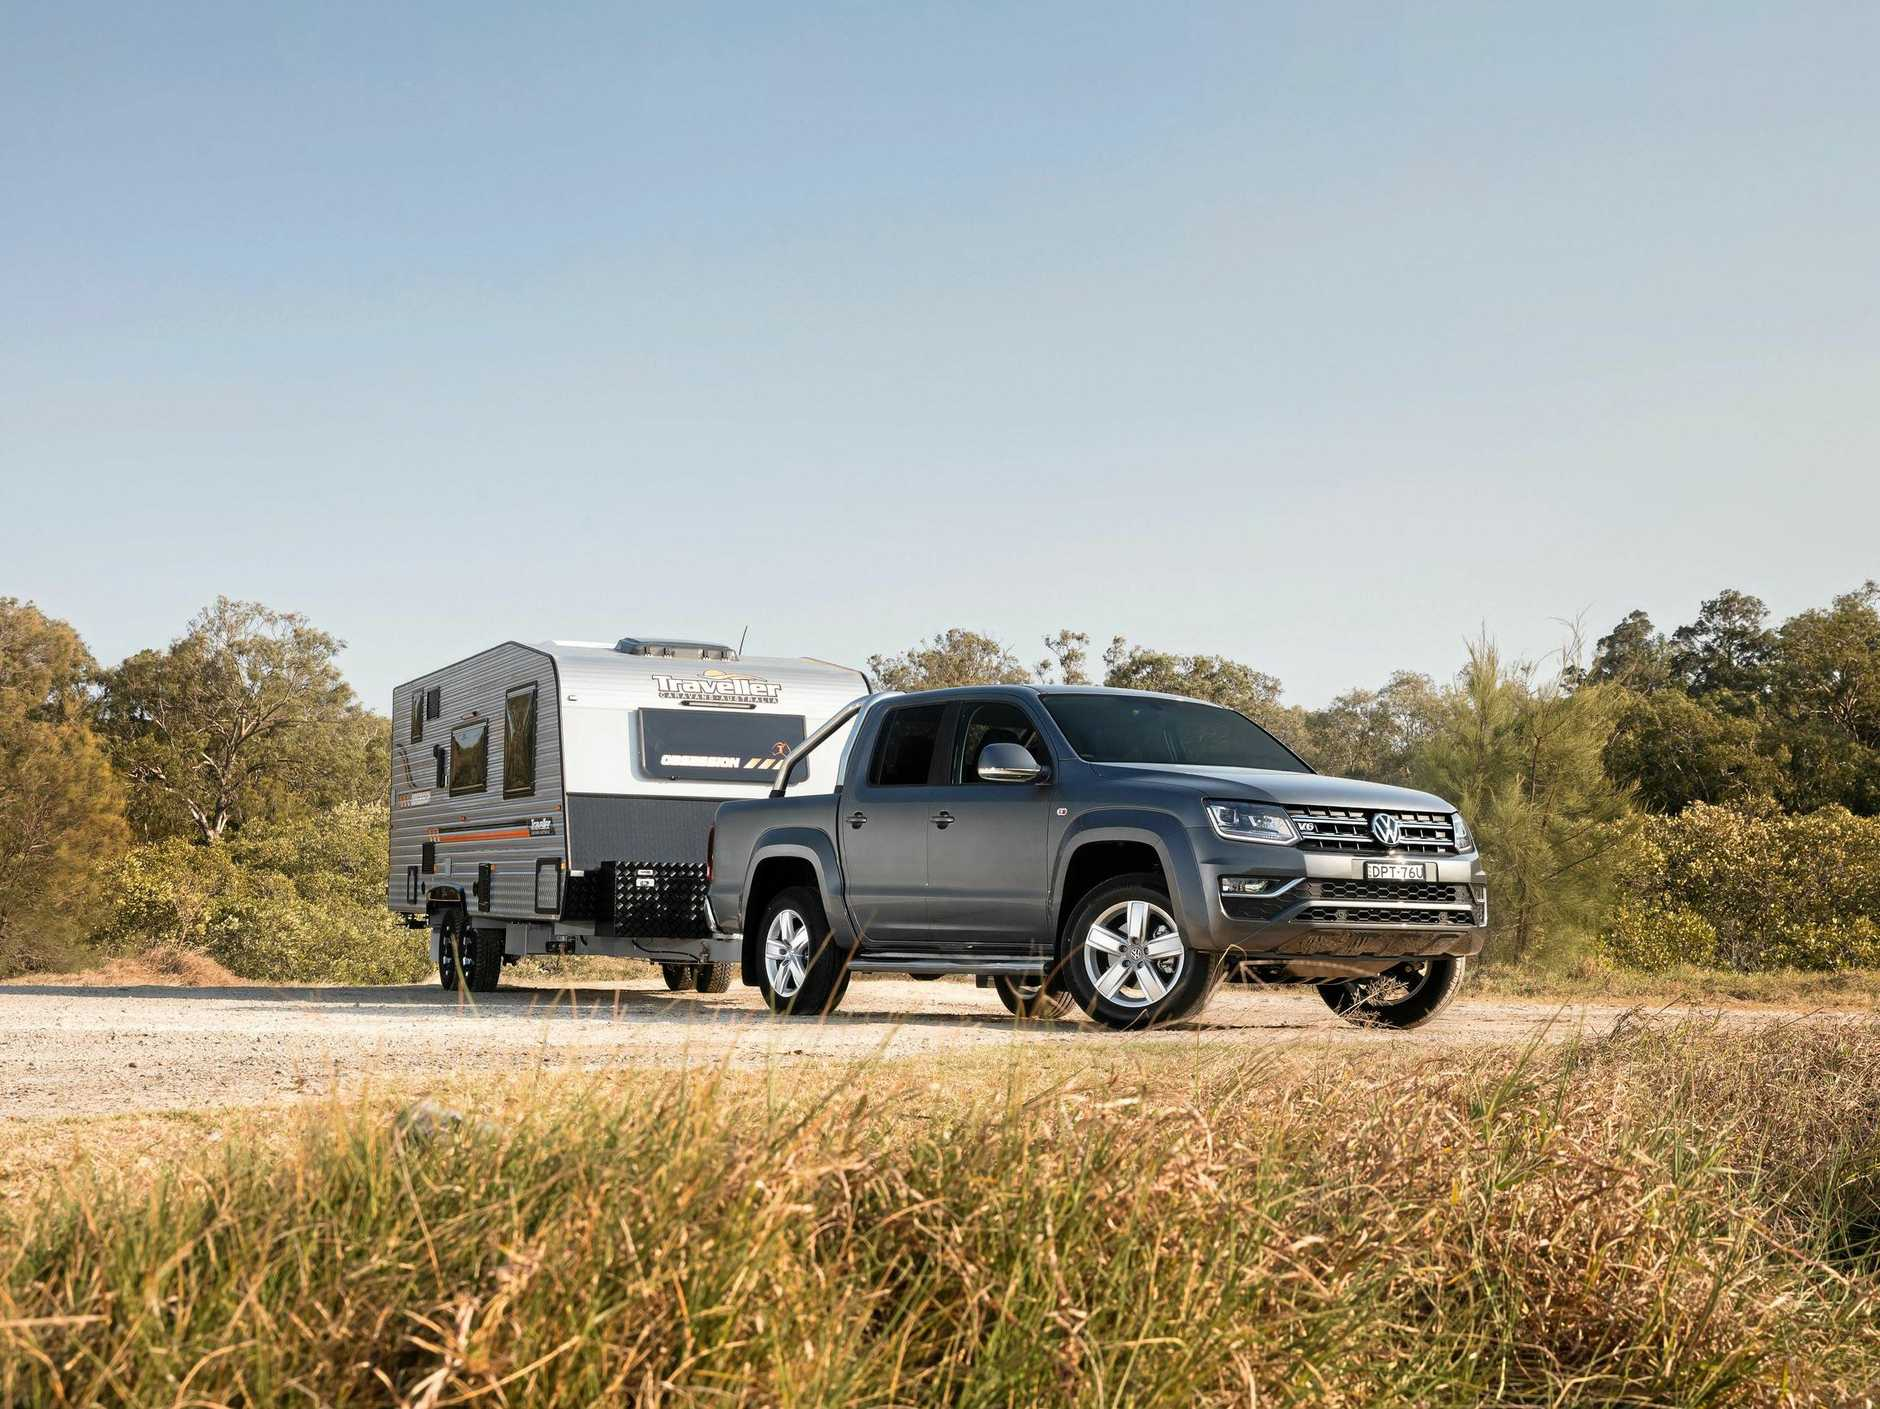 VW Amarok muscles up with 3 5 tonne towing | Sunshine Coast